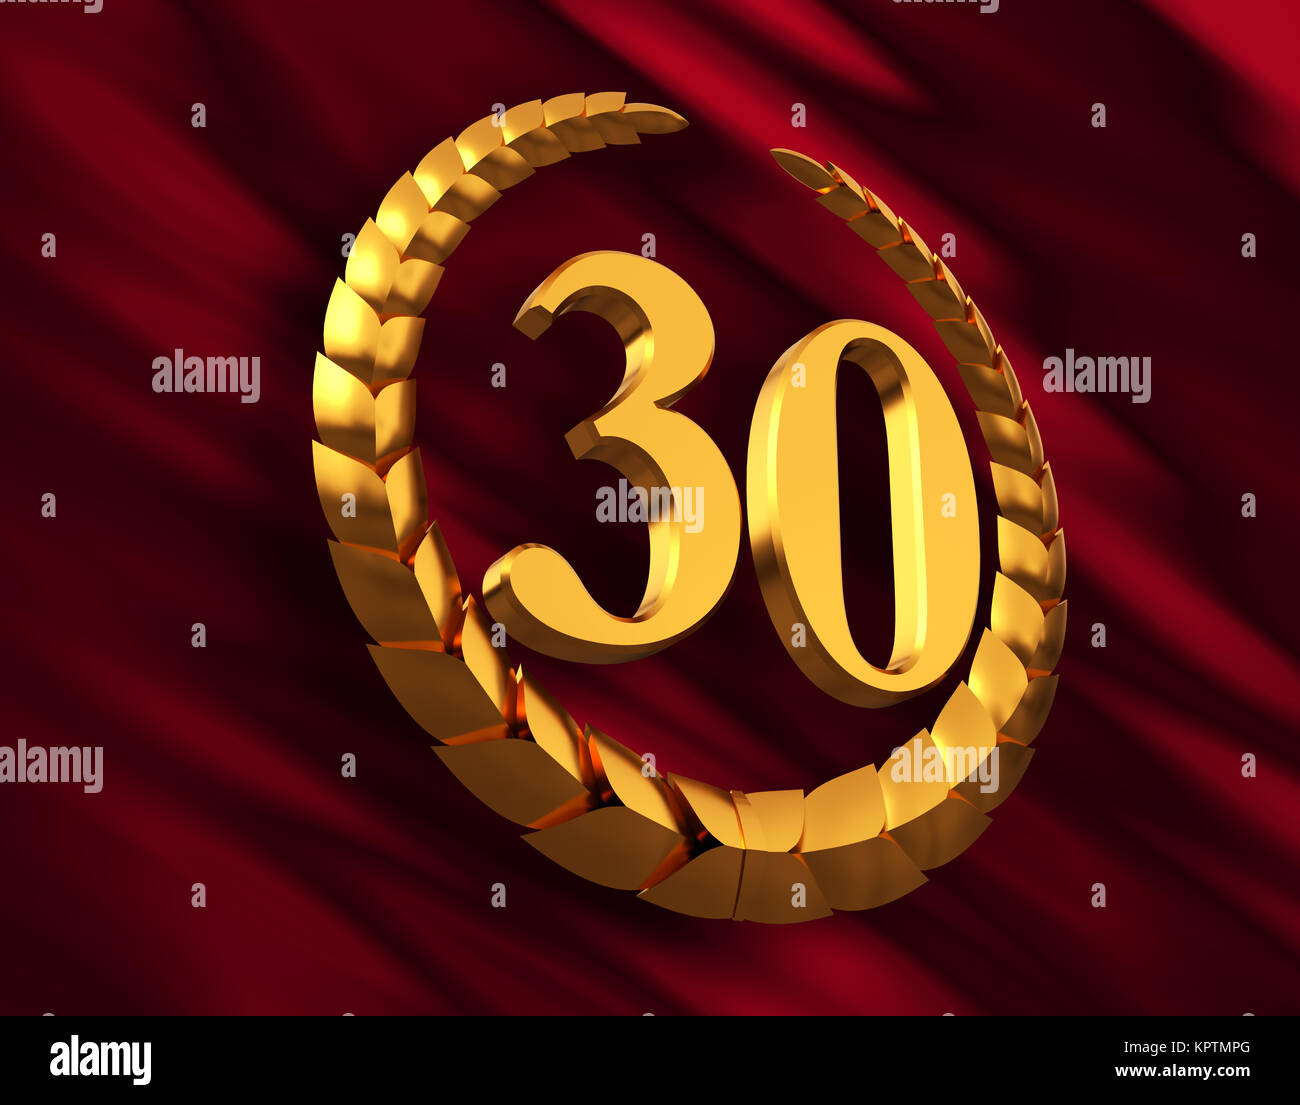 Anniversary Golden Laurel Wreath And Numeral 30 On Red Flag - Stock Image